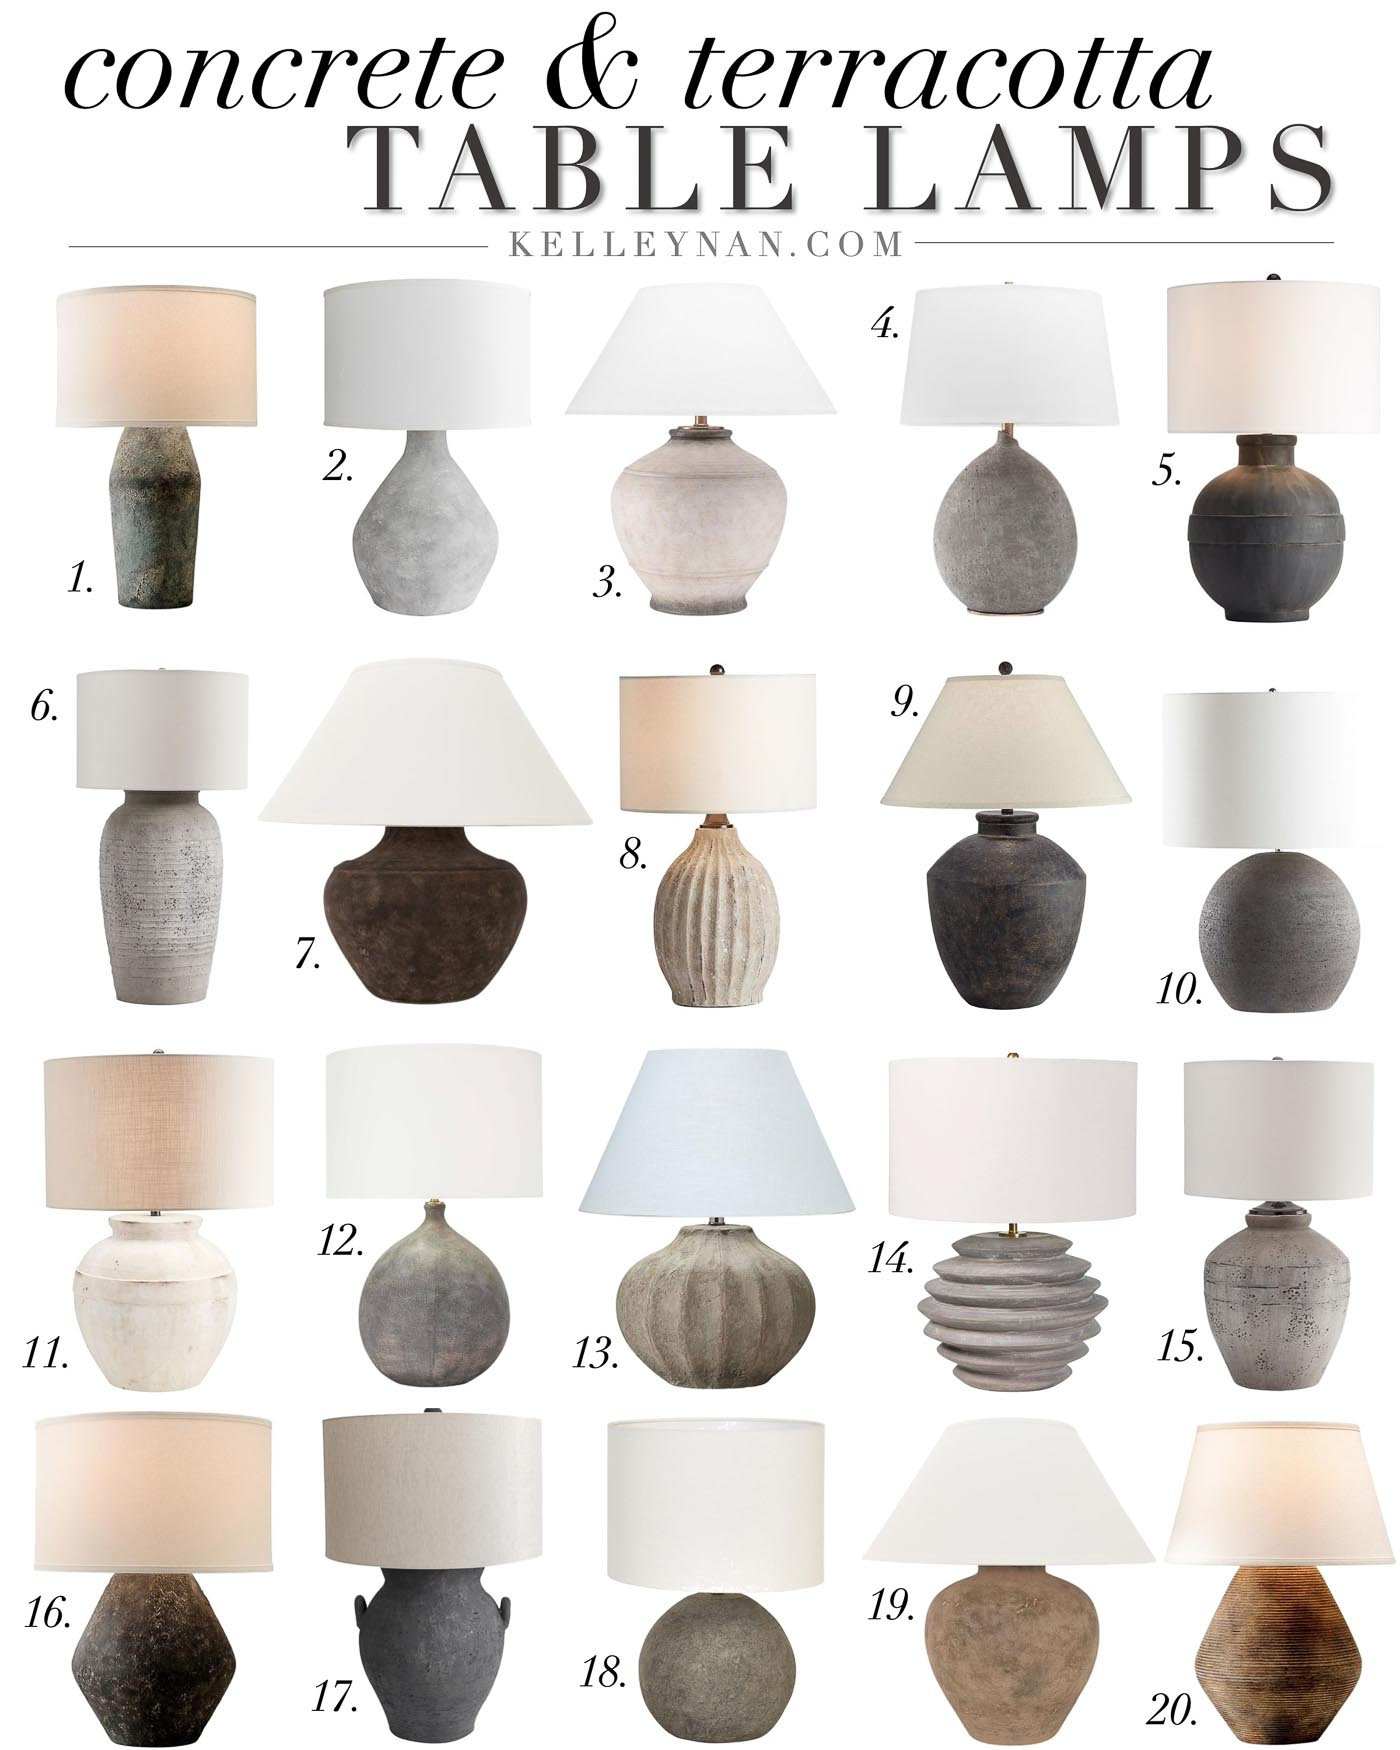 20 Concrete Table Lamps & Terracotta Lamps